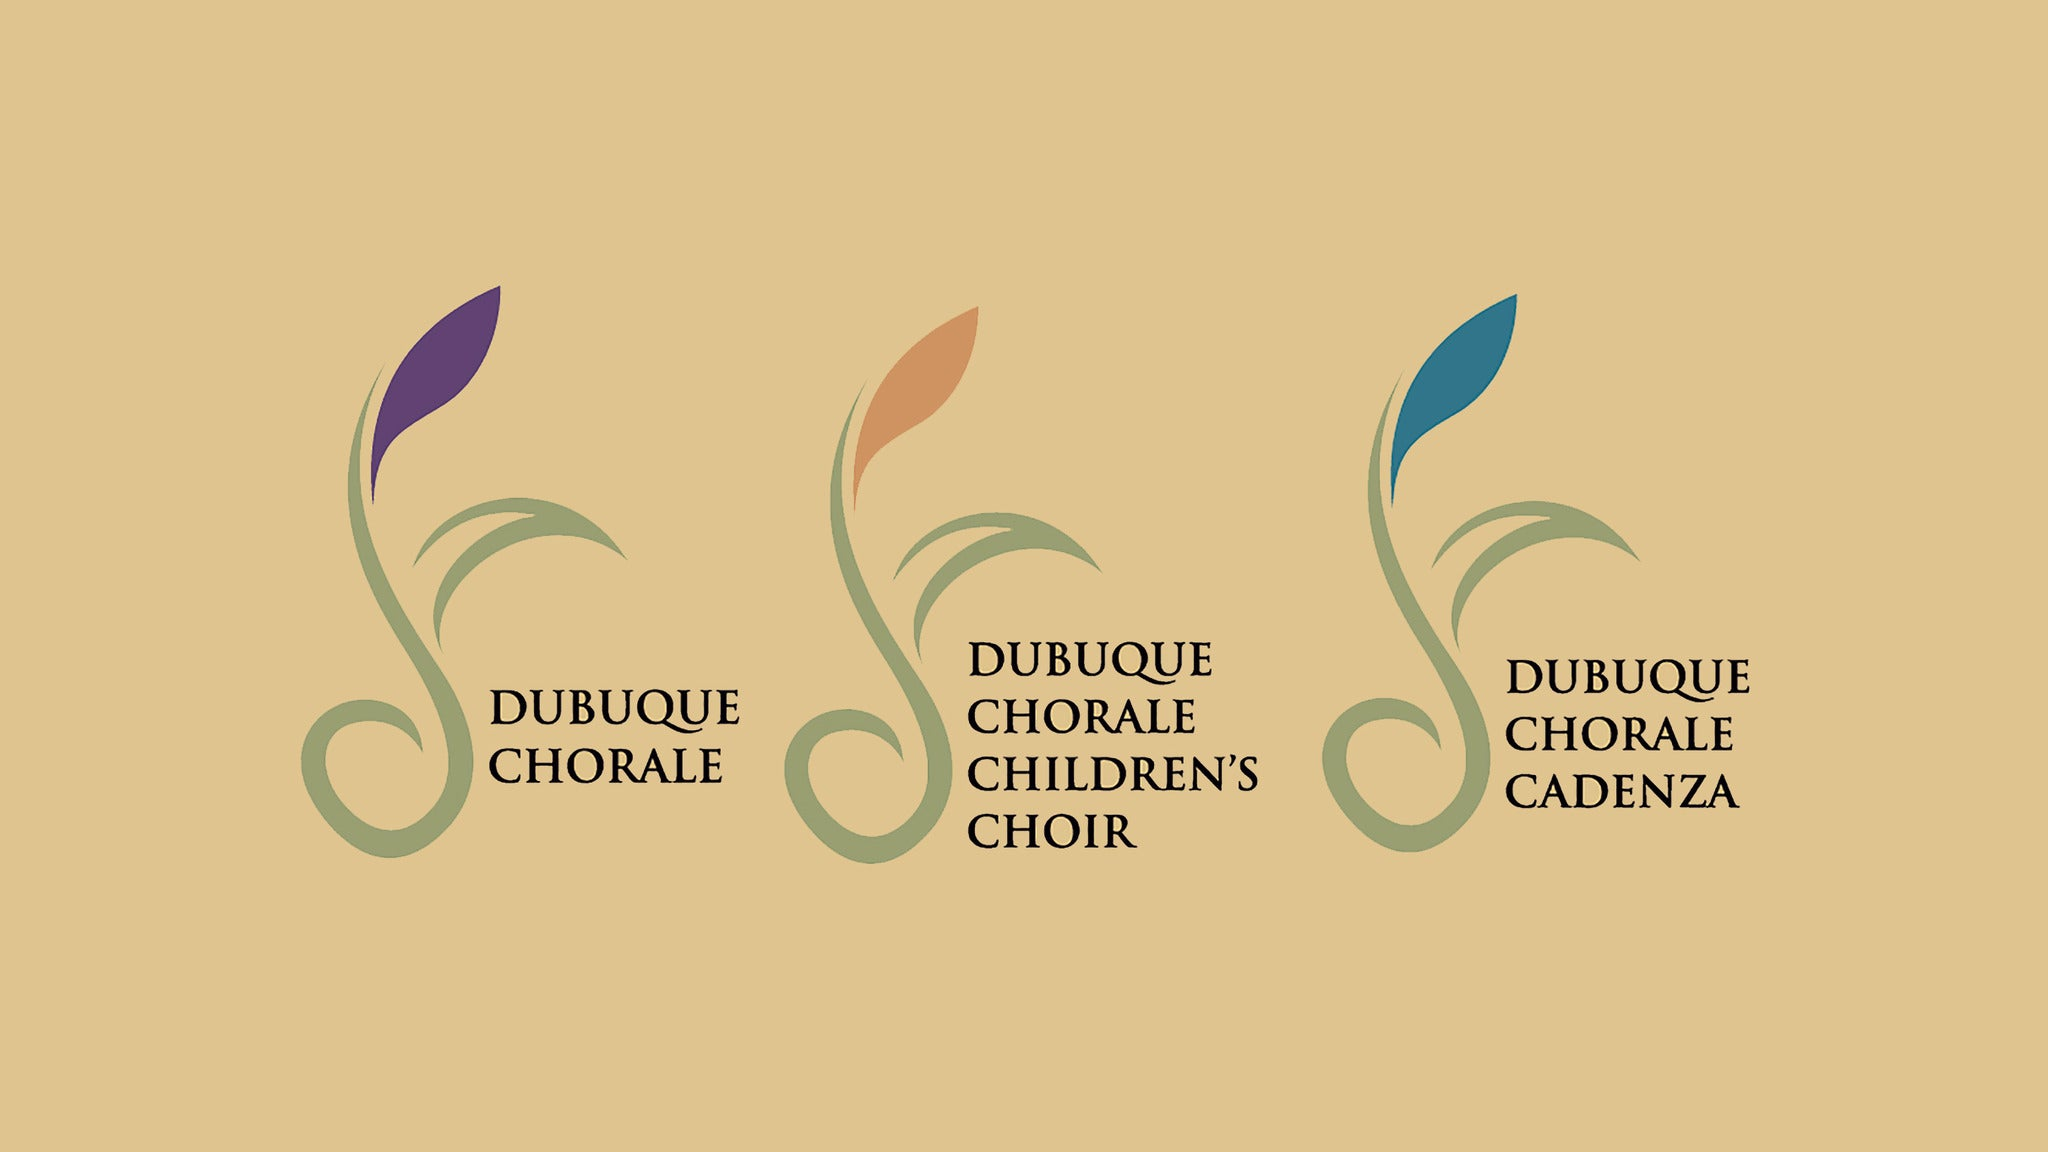 Dubuque Chorale